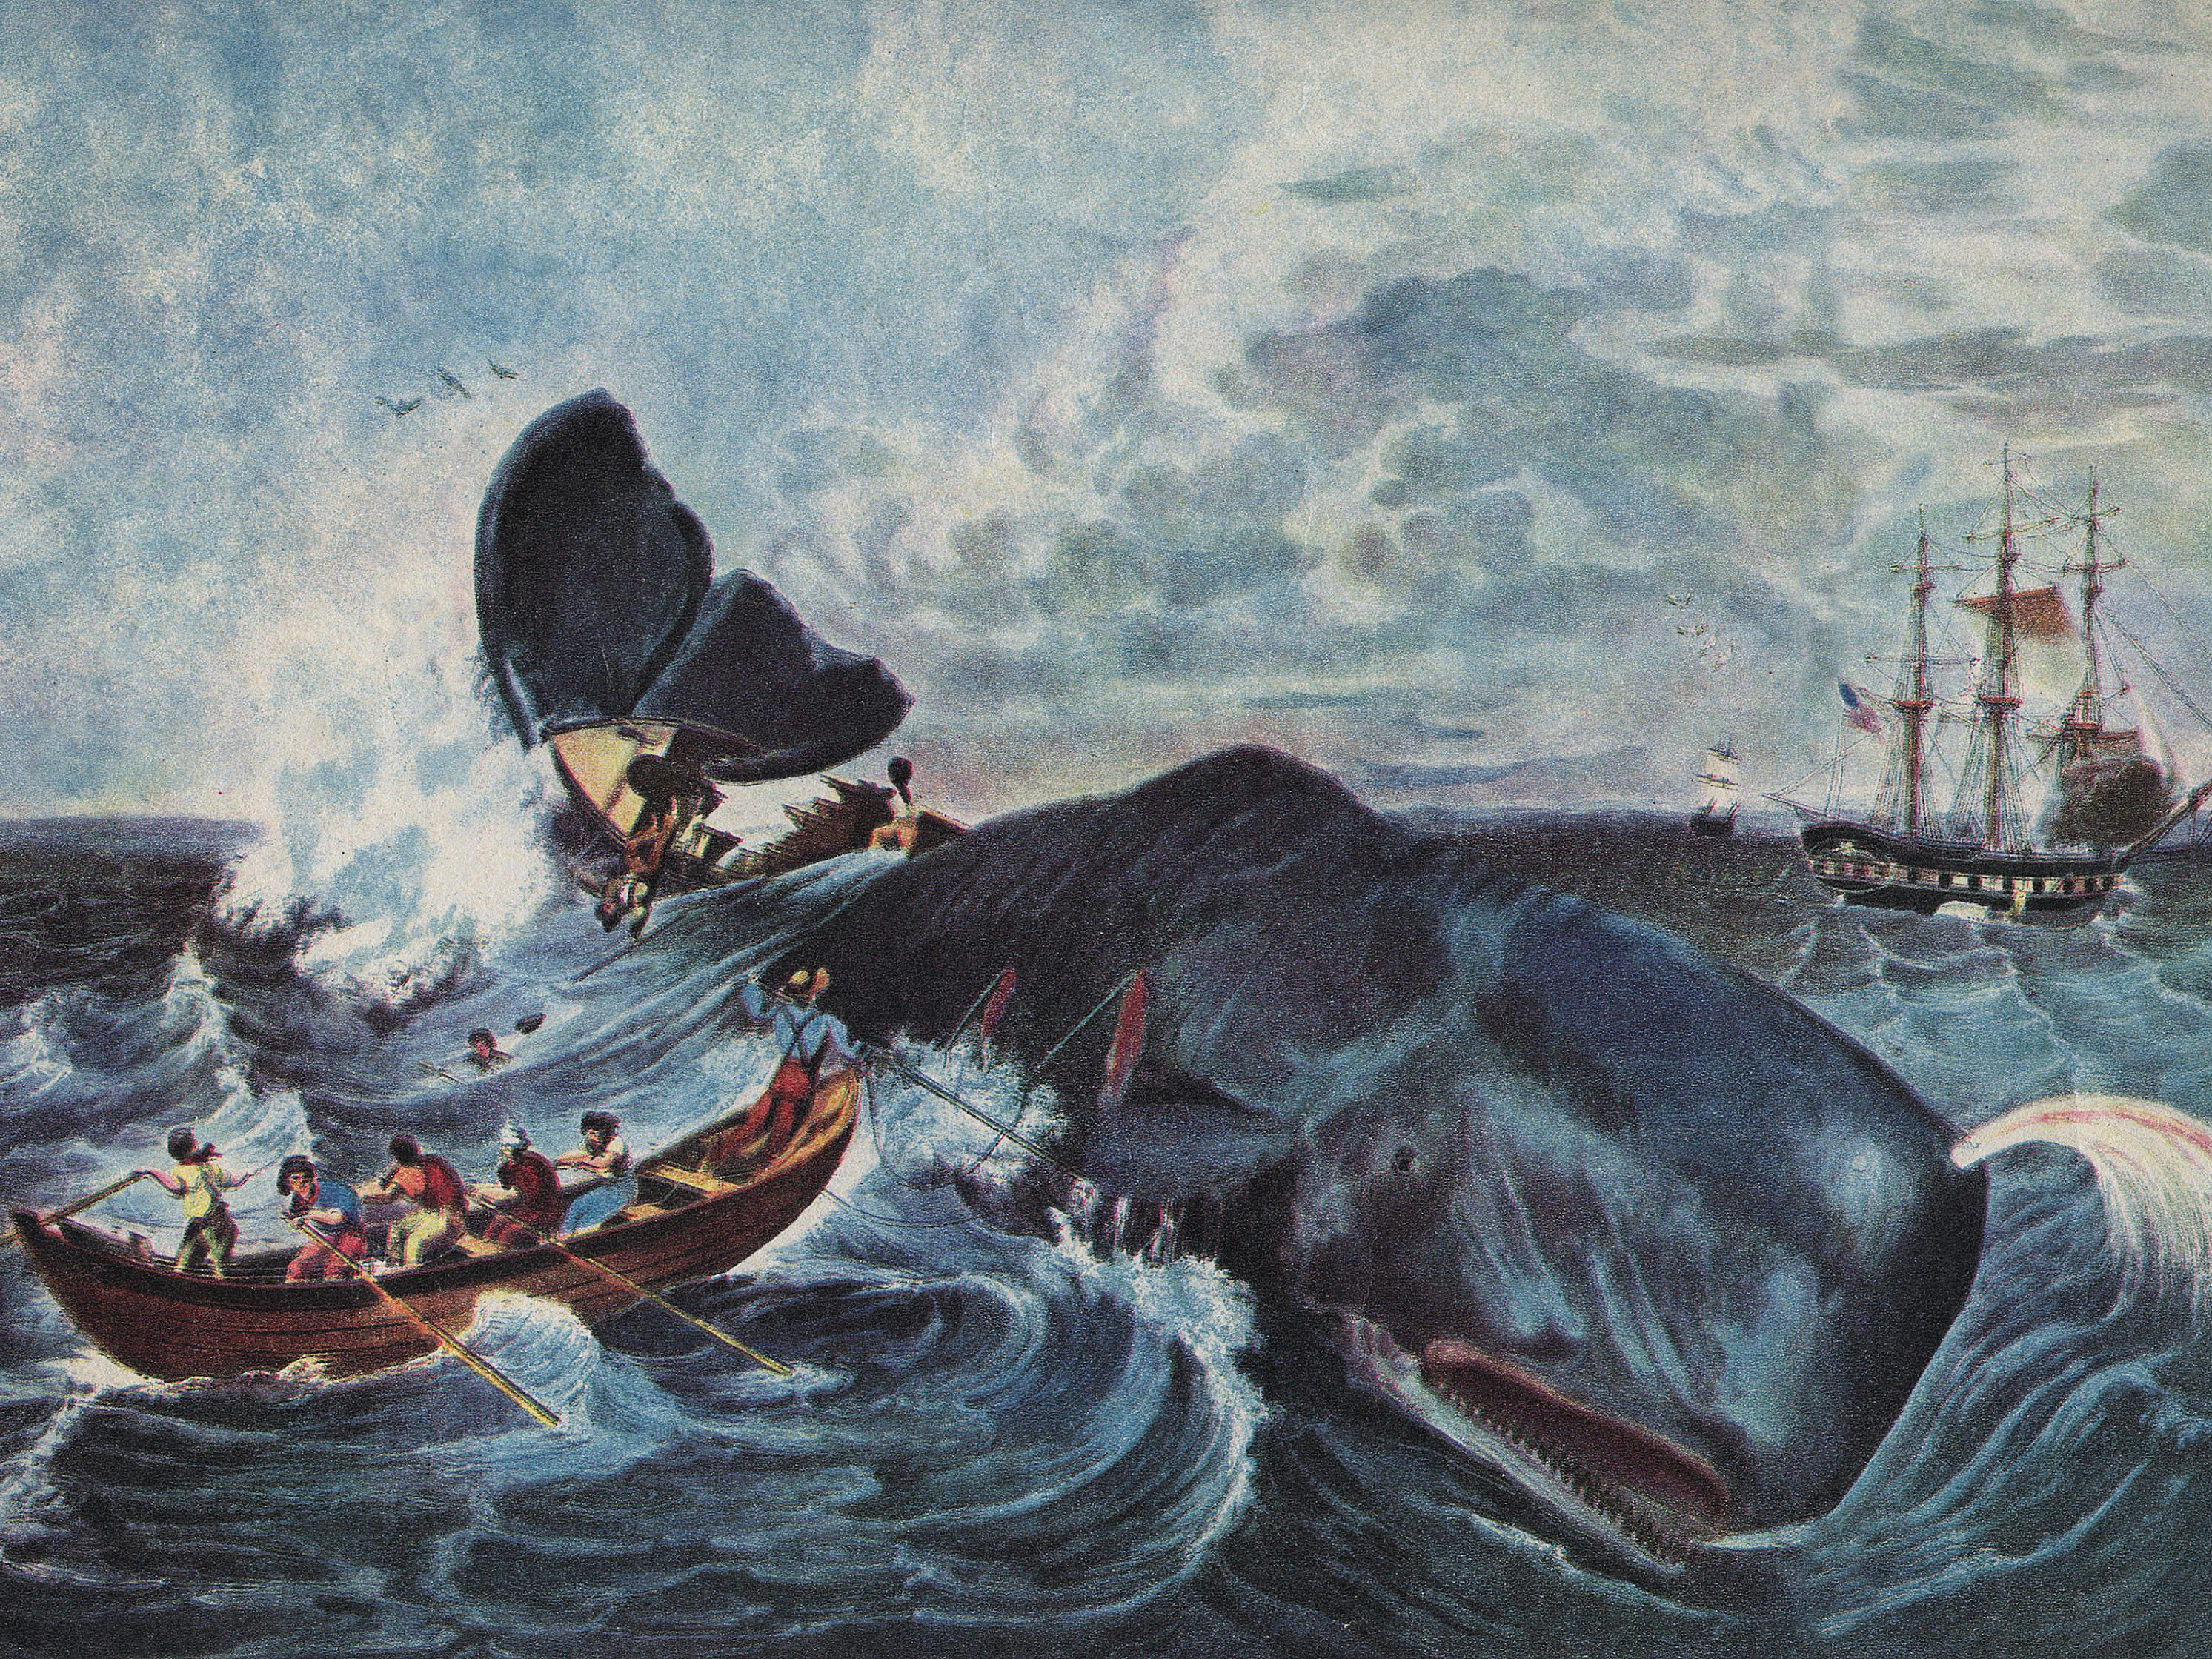 History Of The 19th Century Whaling Industry